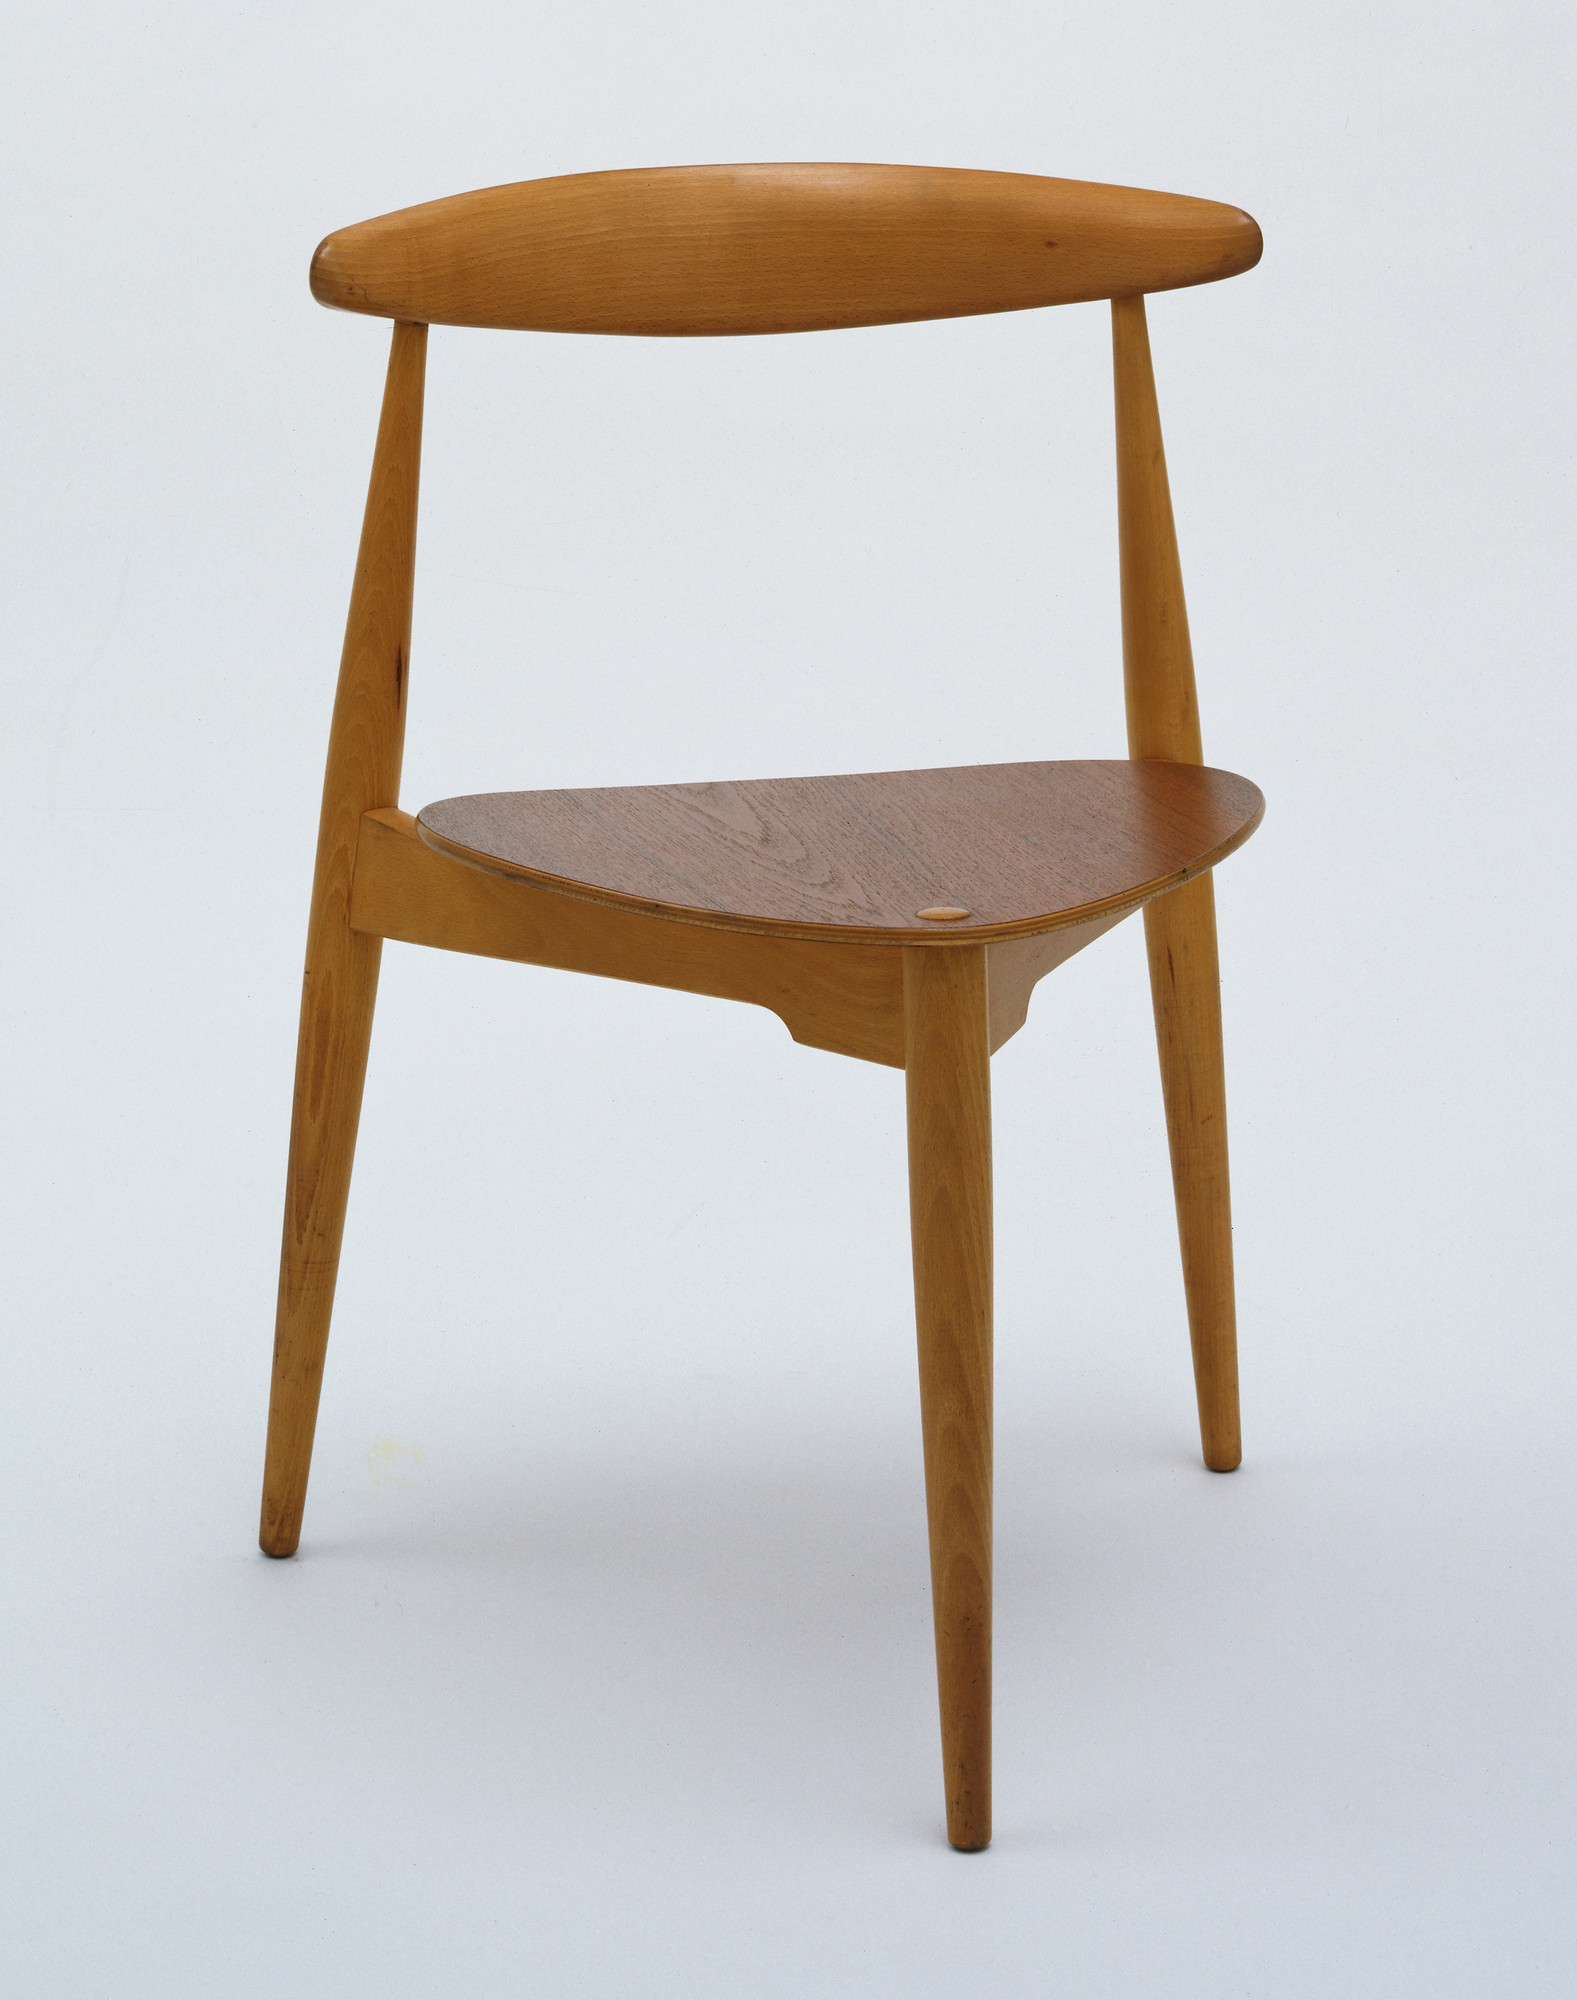 Hans Wegner. Stacking Side Chair. 1952